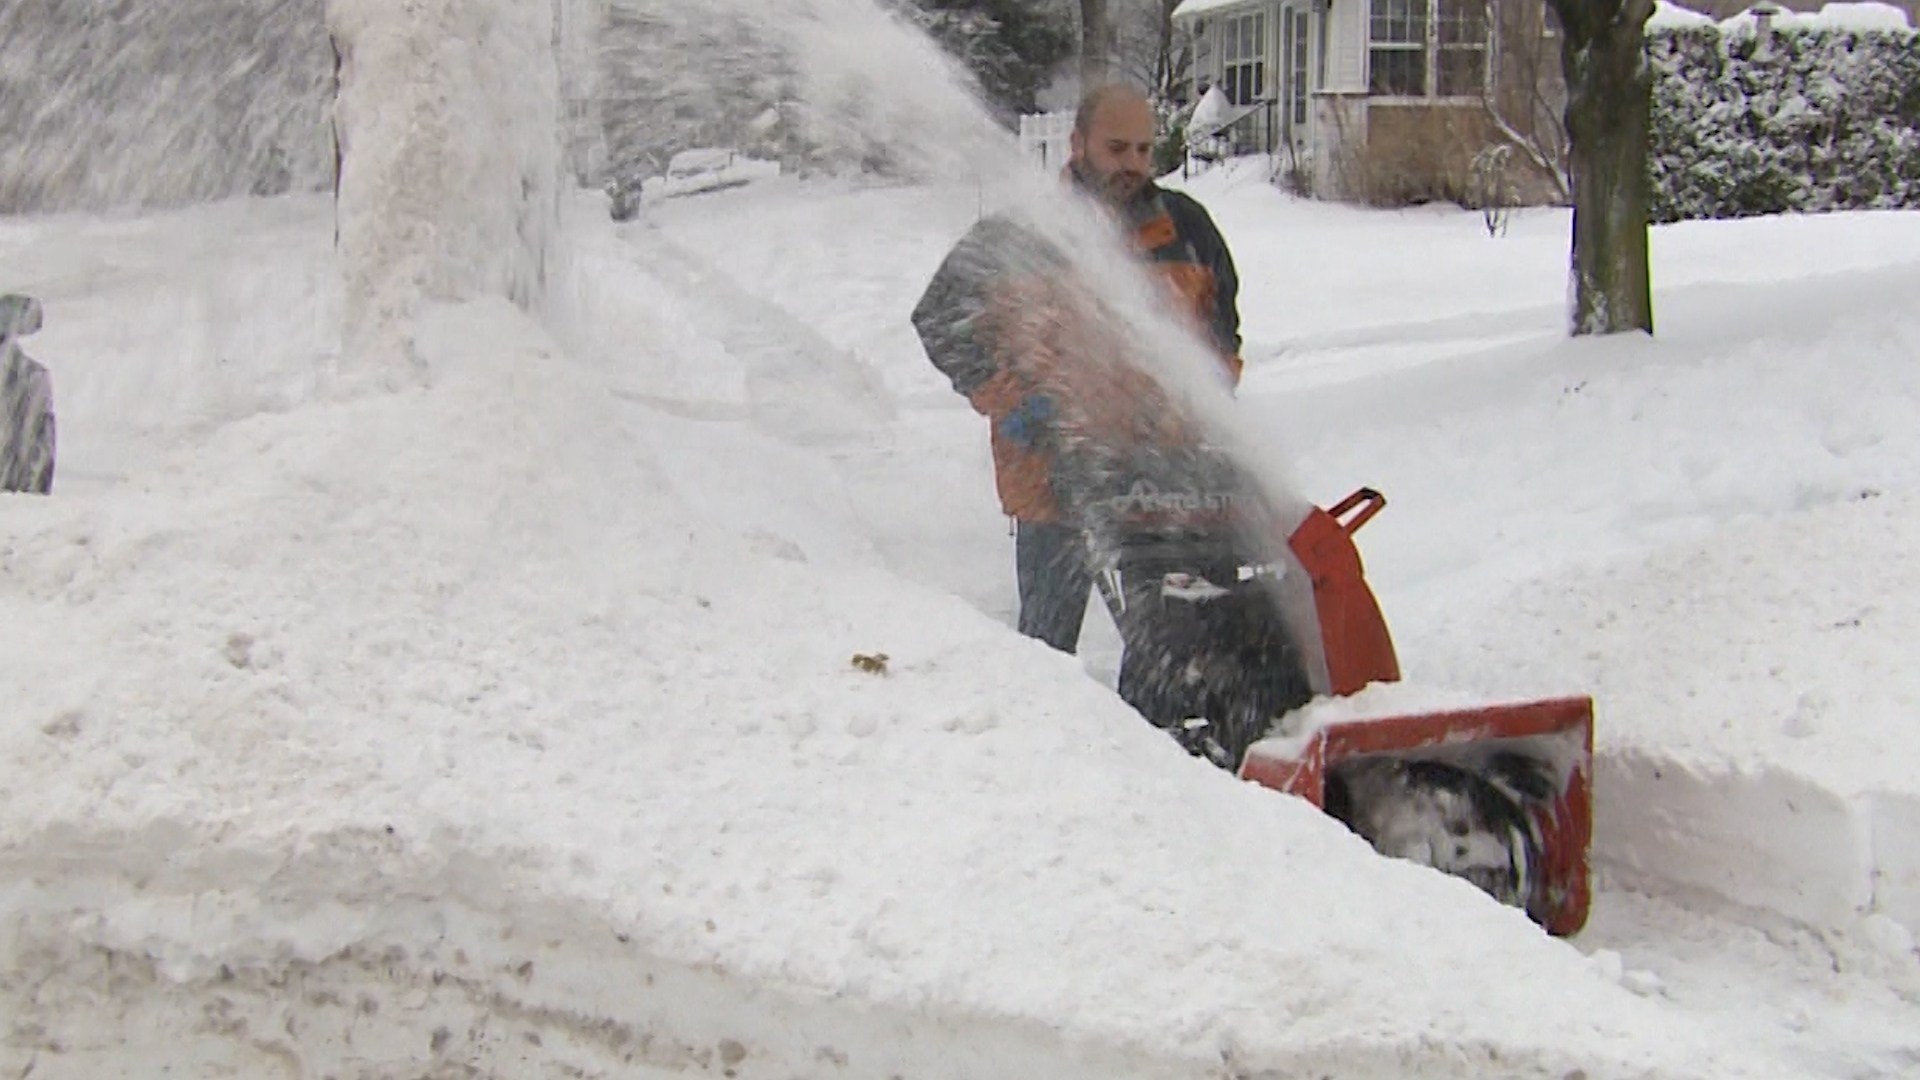 Digging and blowing out from the first deep snow of the season